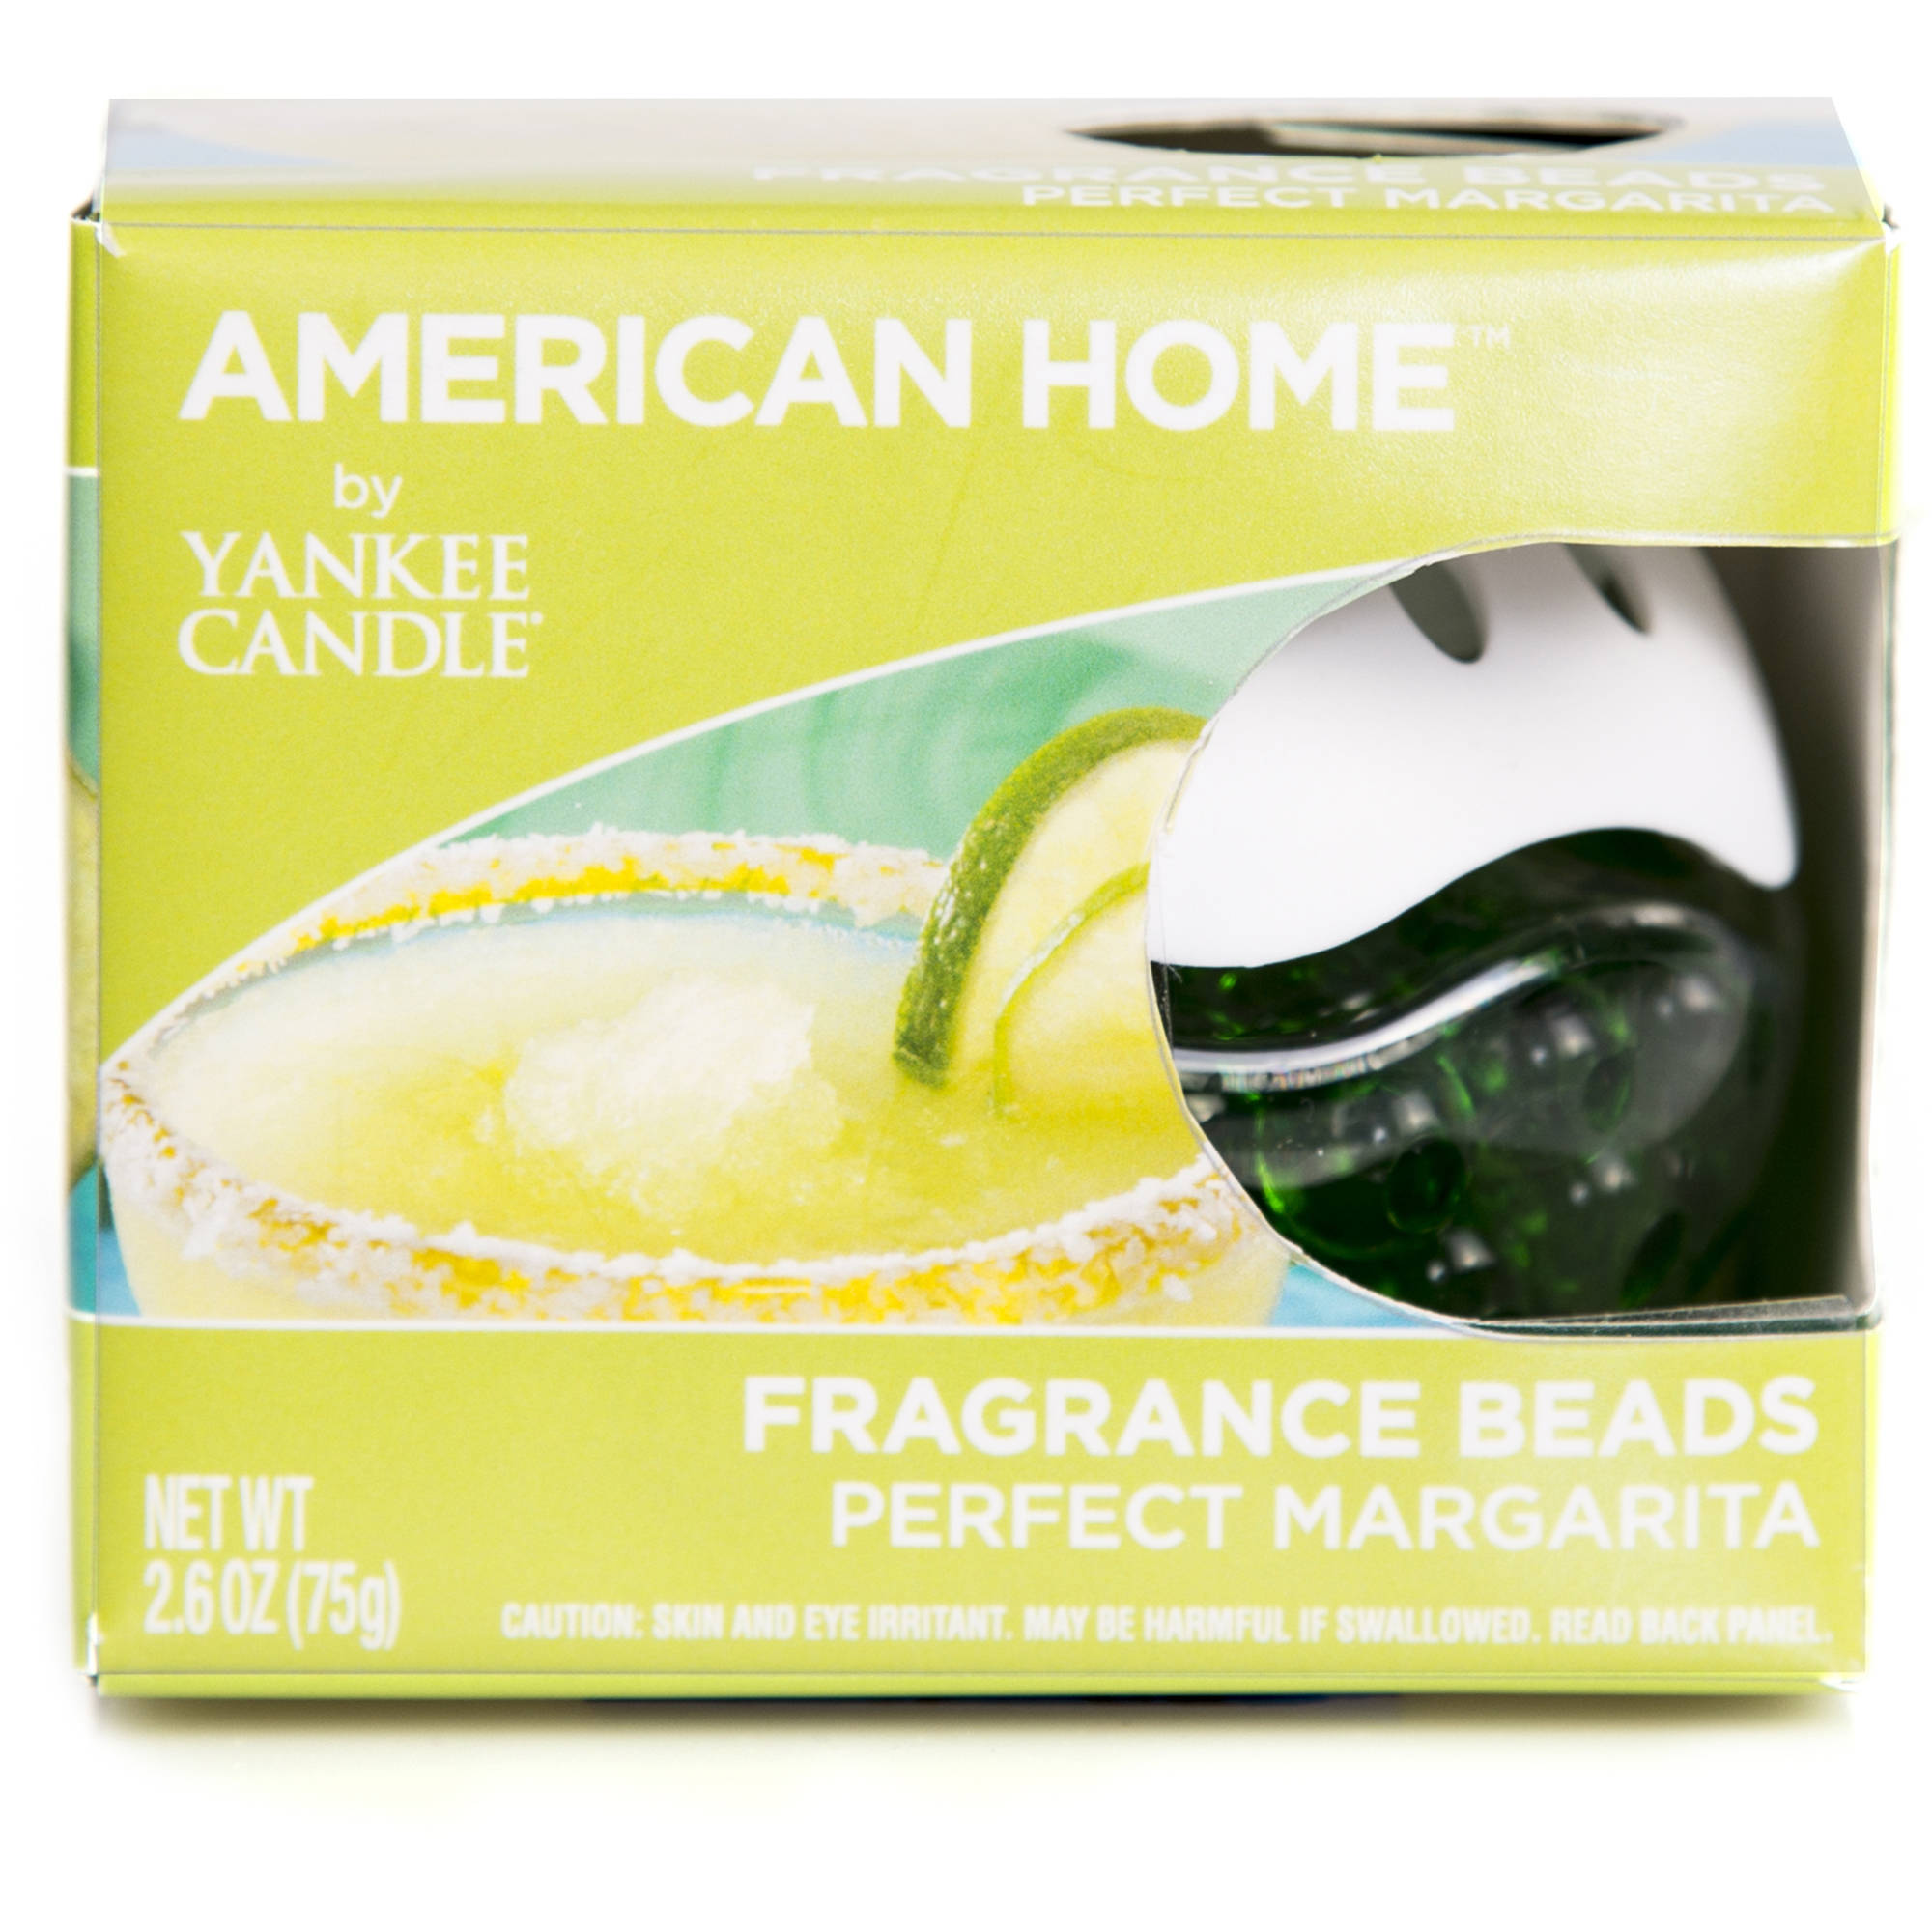 American Home by Yankee Candle Perfect Margarita, Fragrance Beads